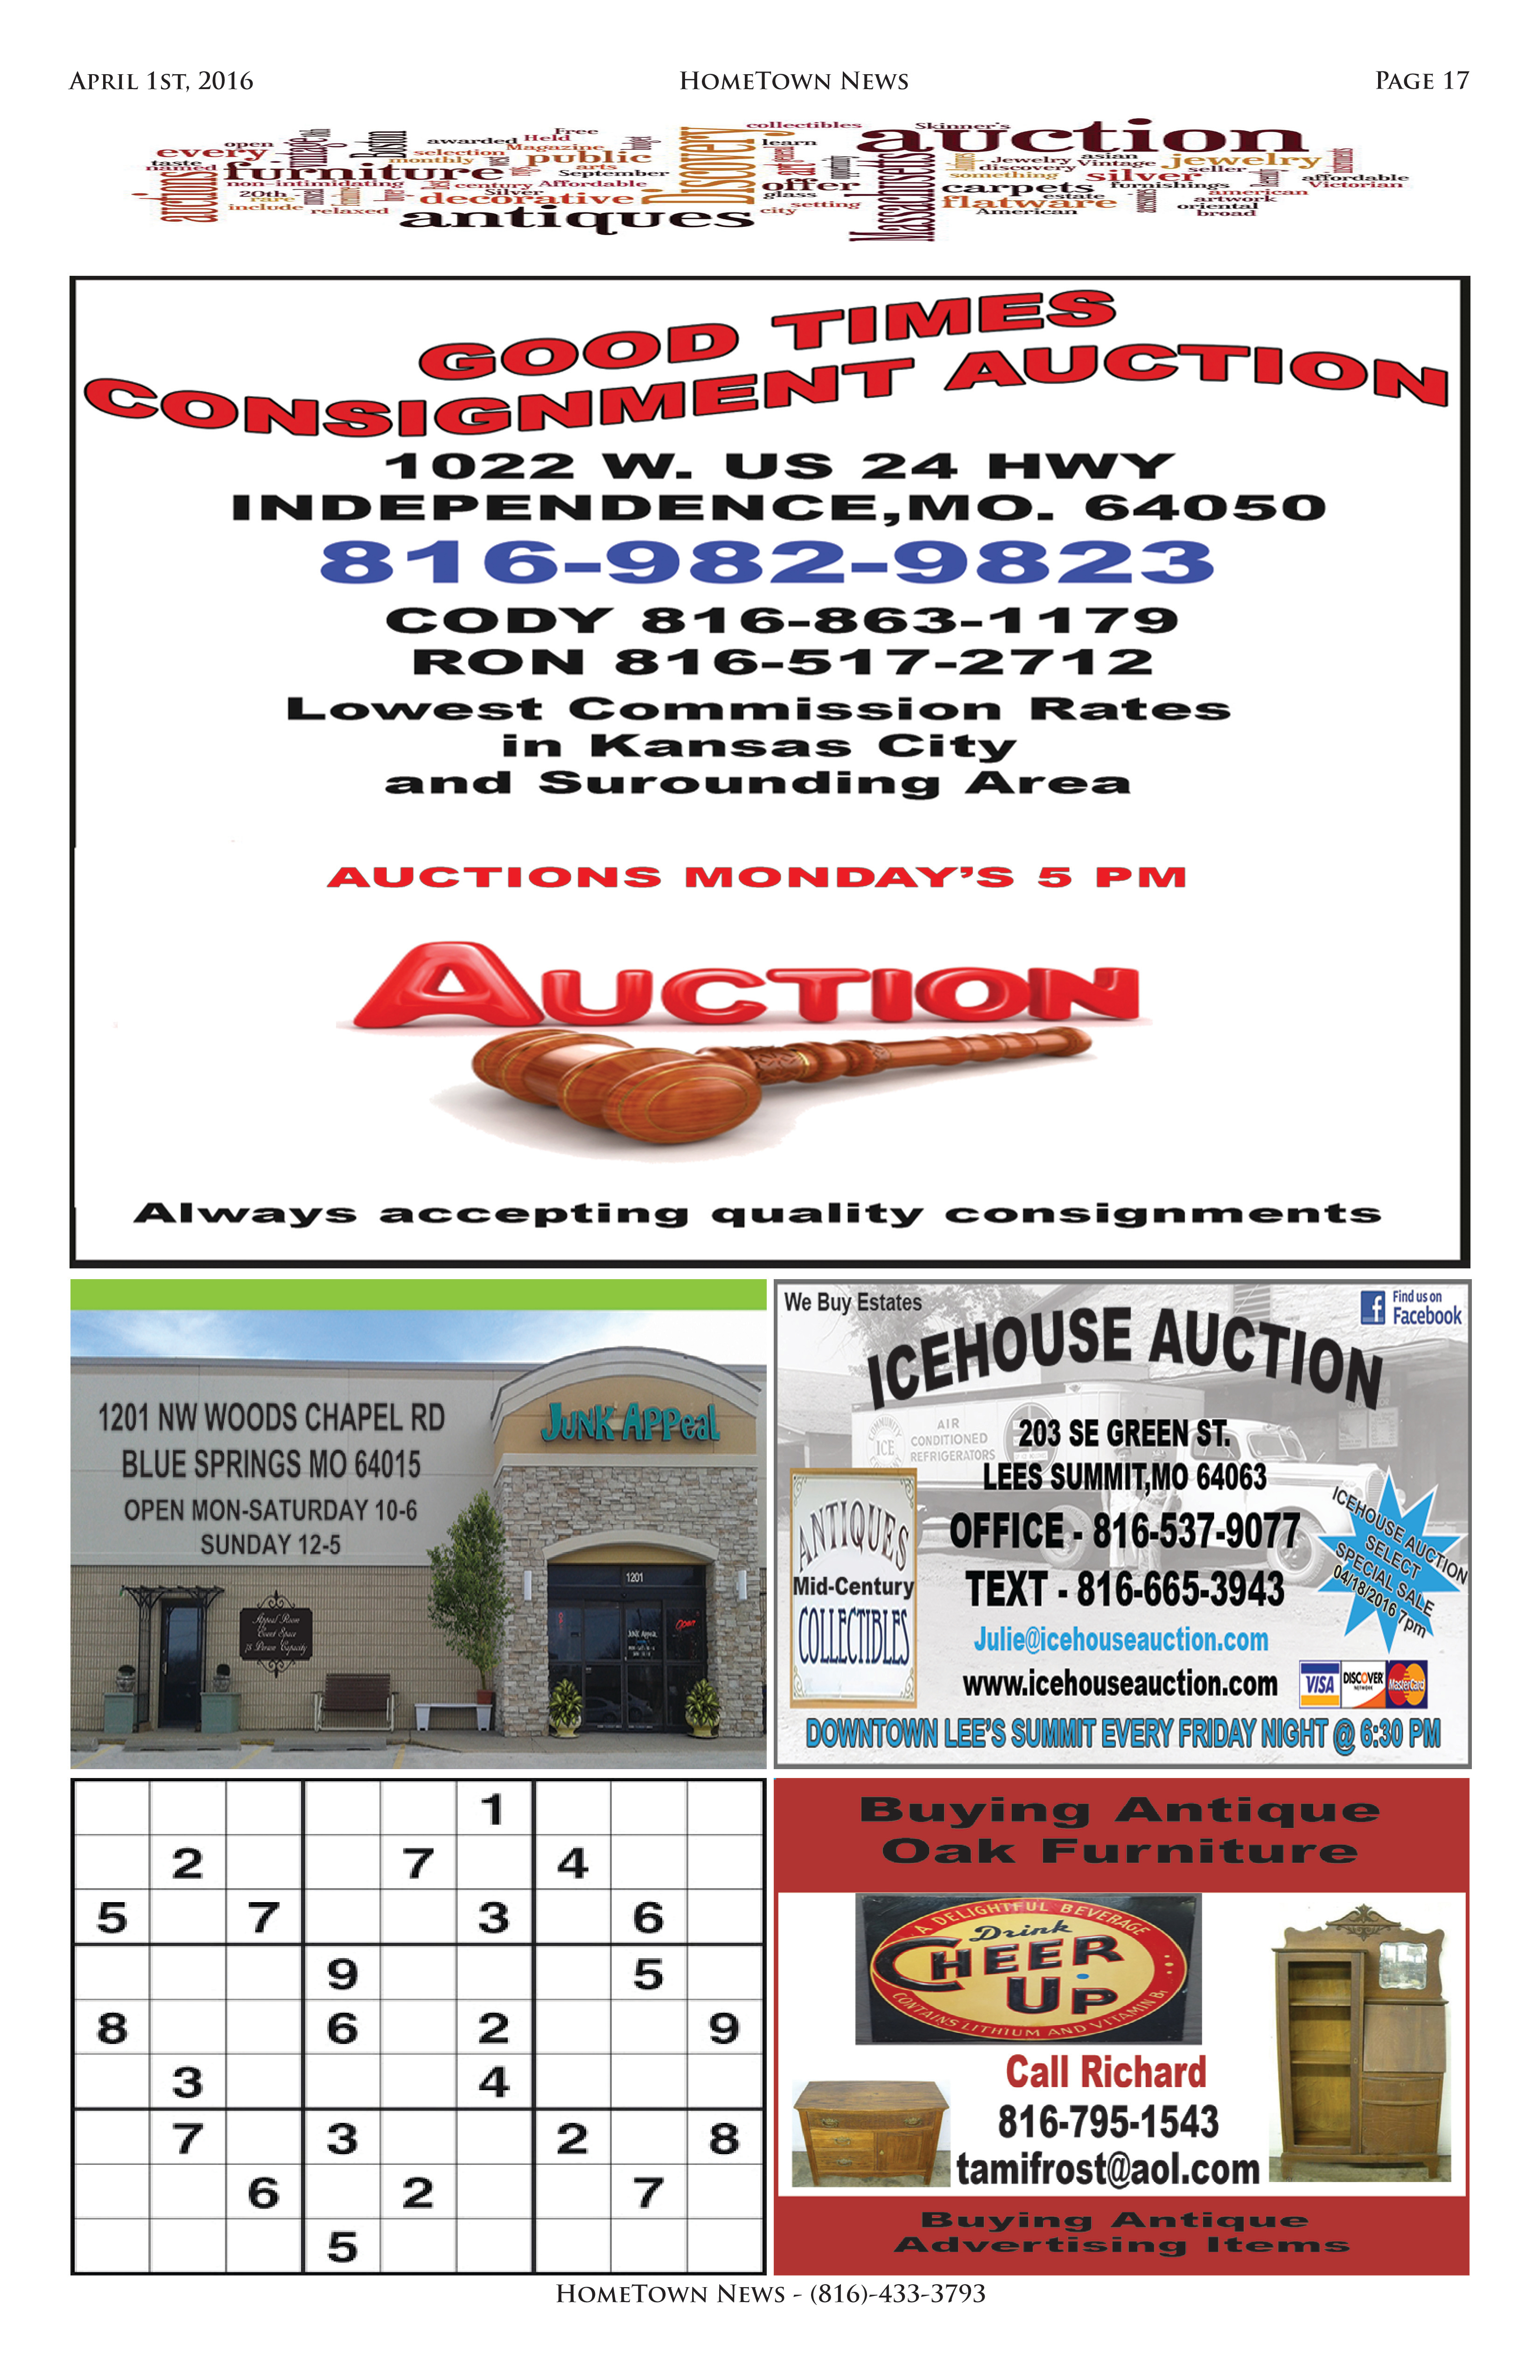 HTN9 - 17  Auction Antiques